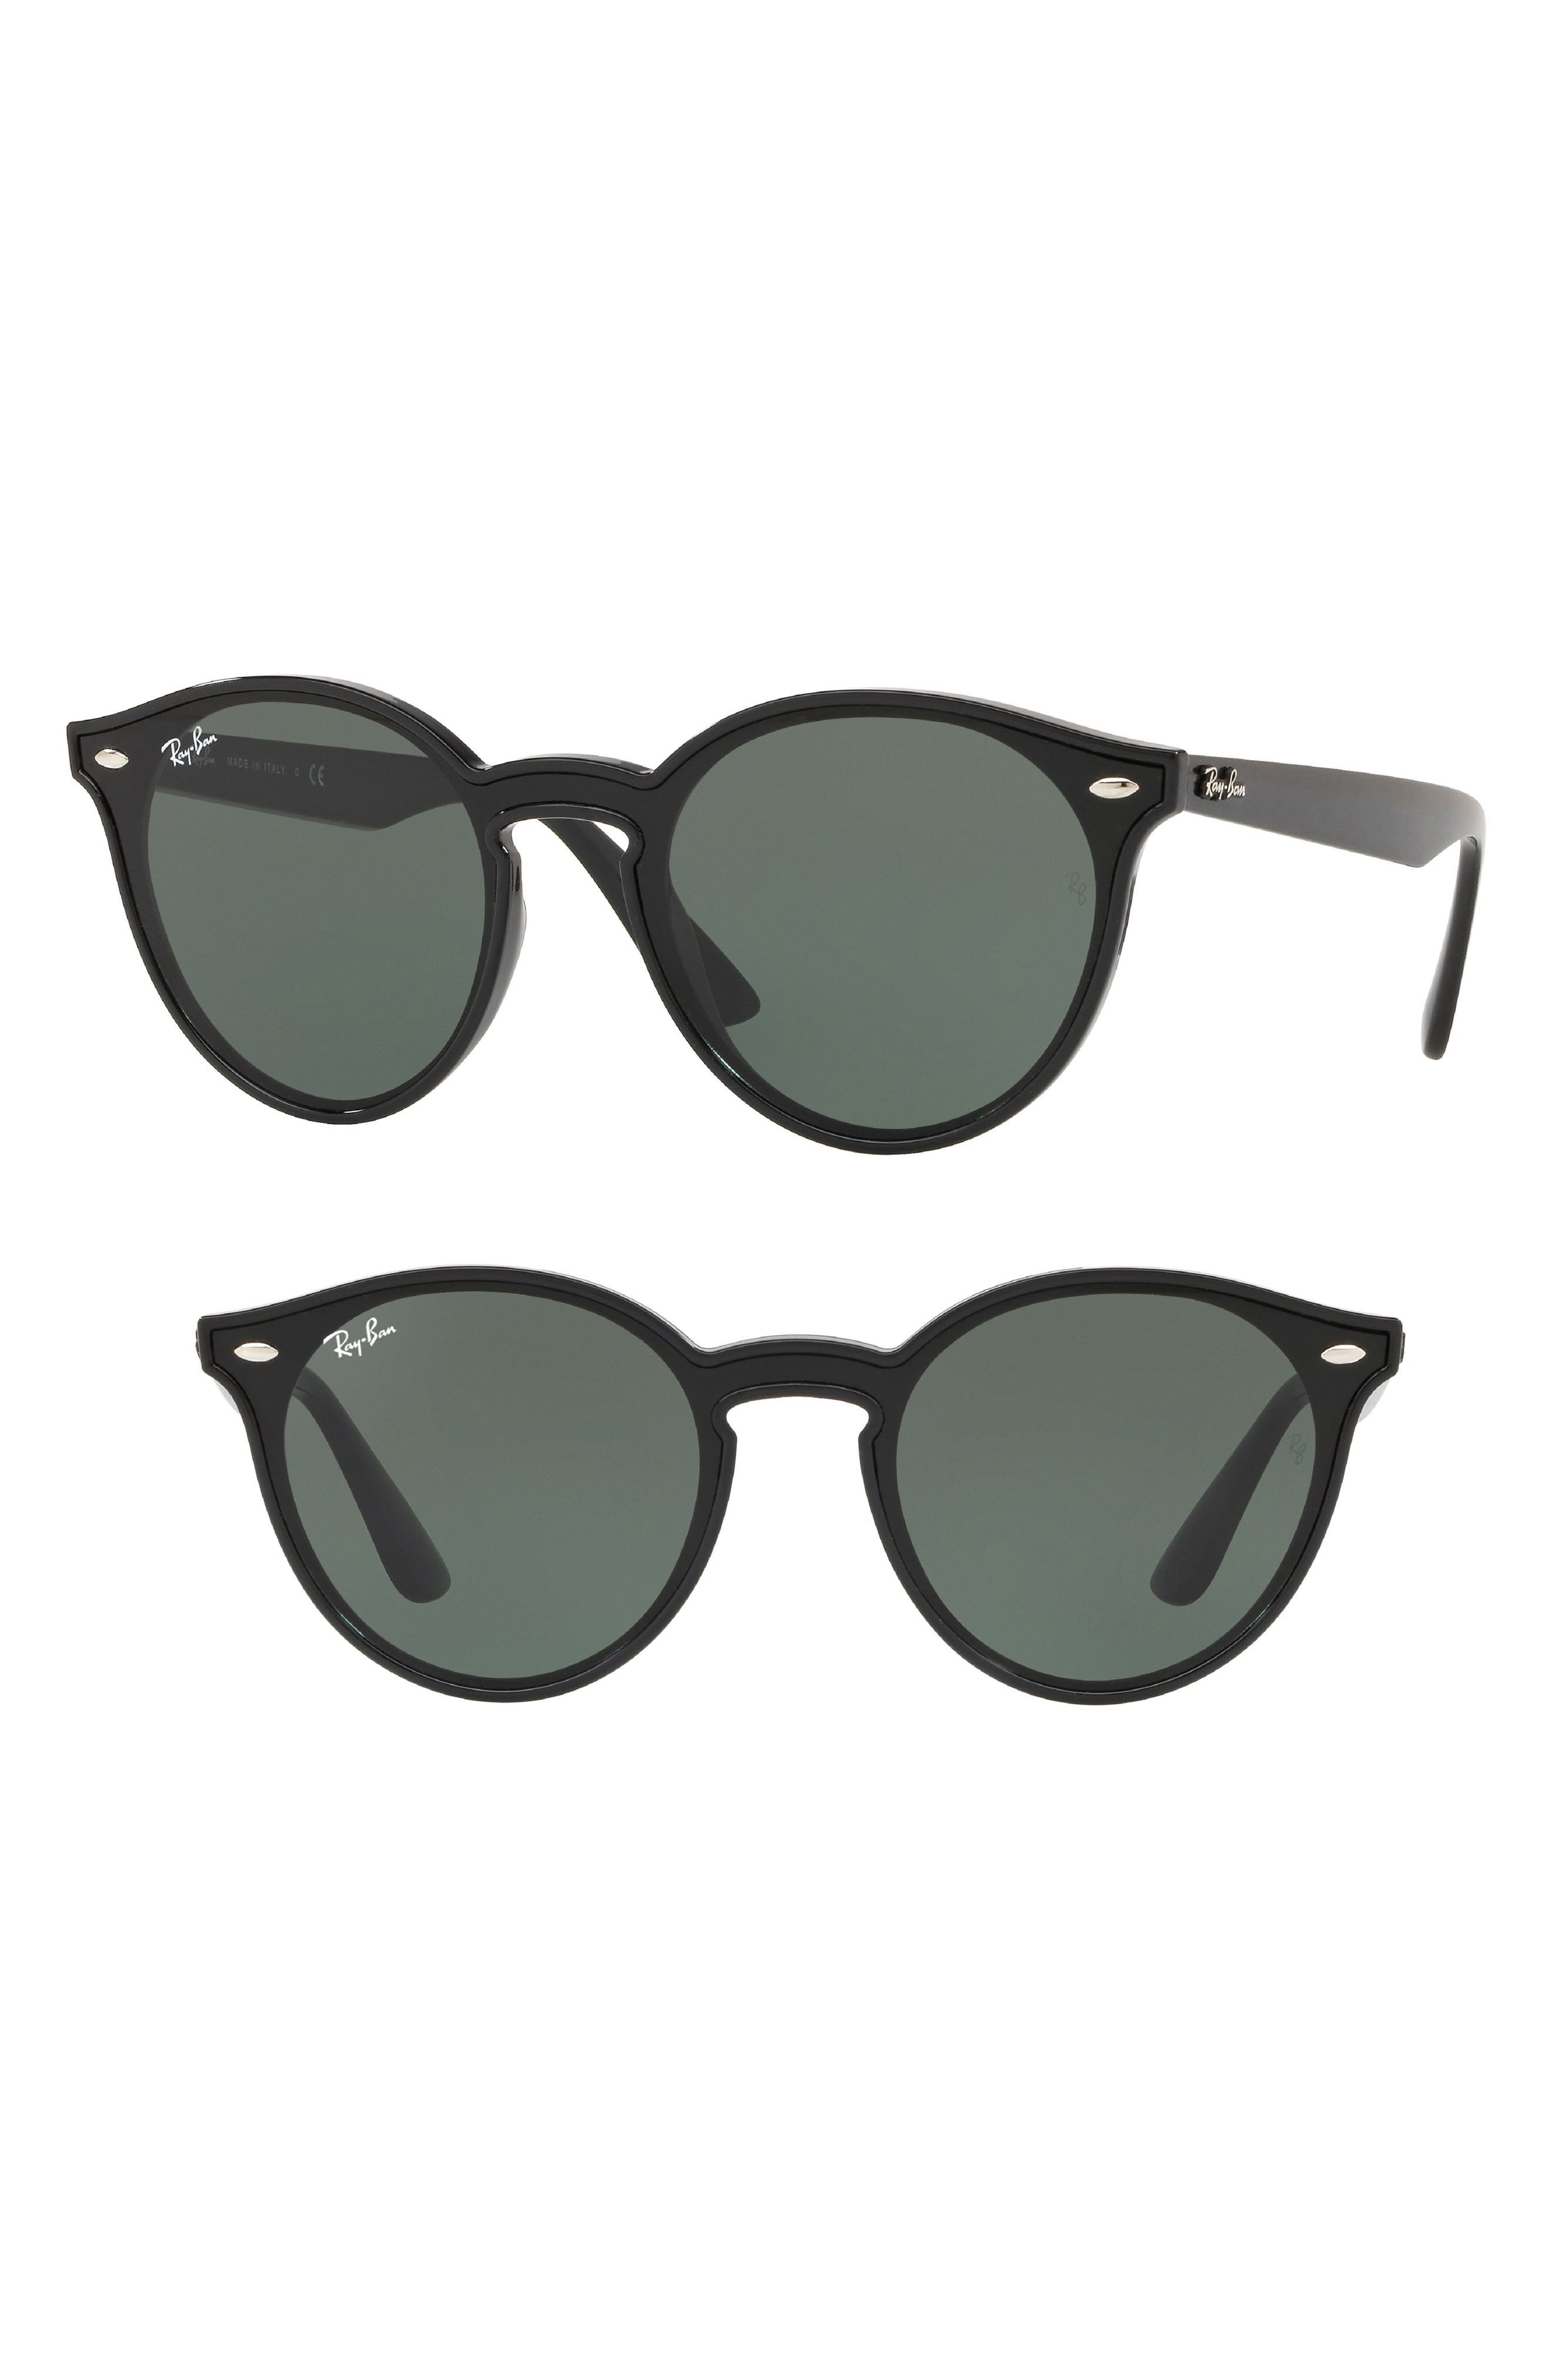 Blaze 37mm Round Sunglasses,                         Main,                         color, Black Solid